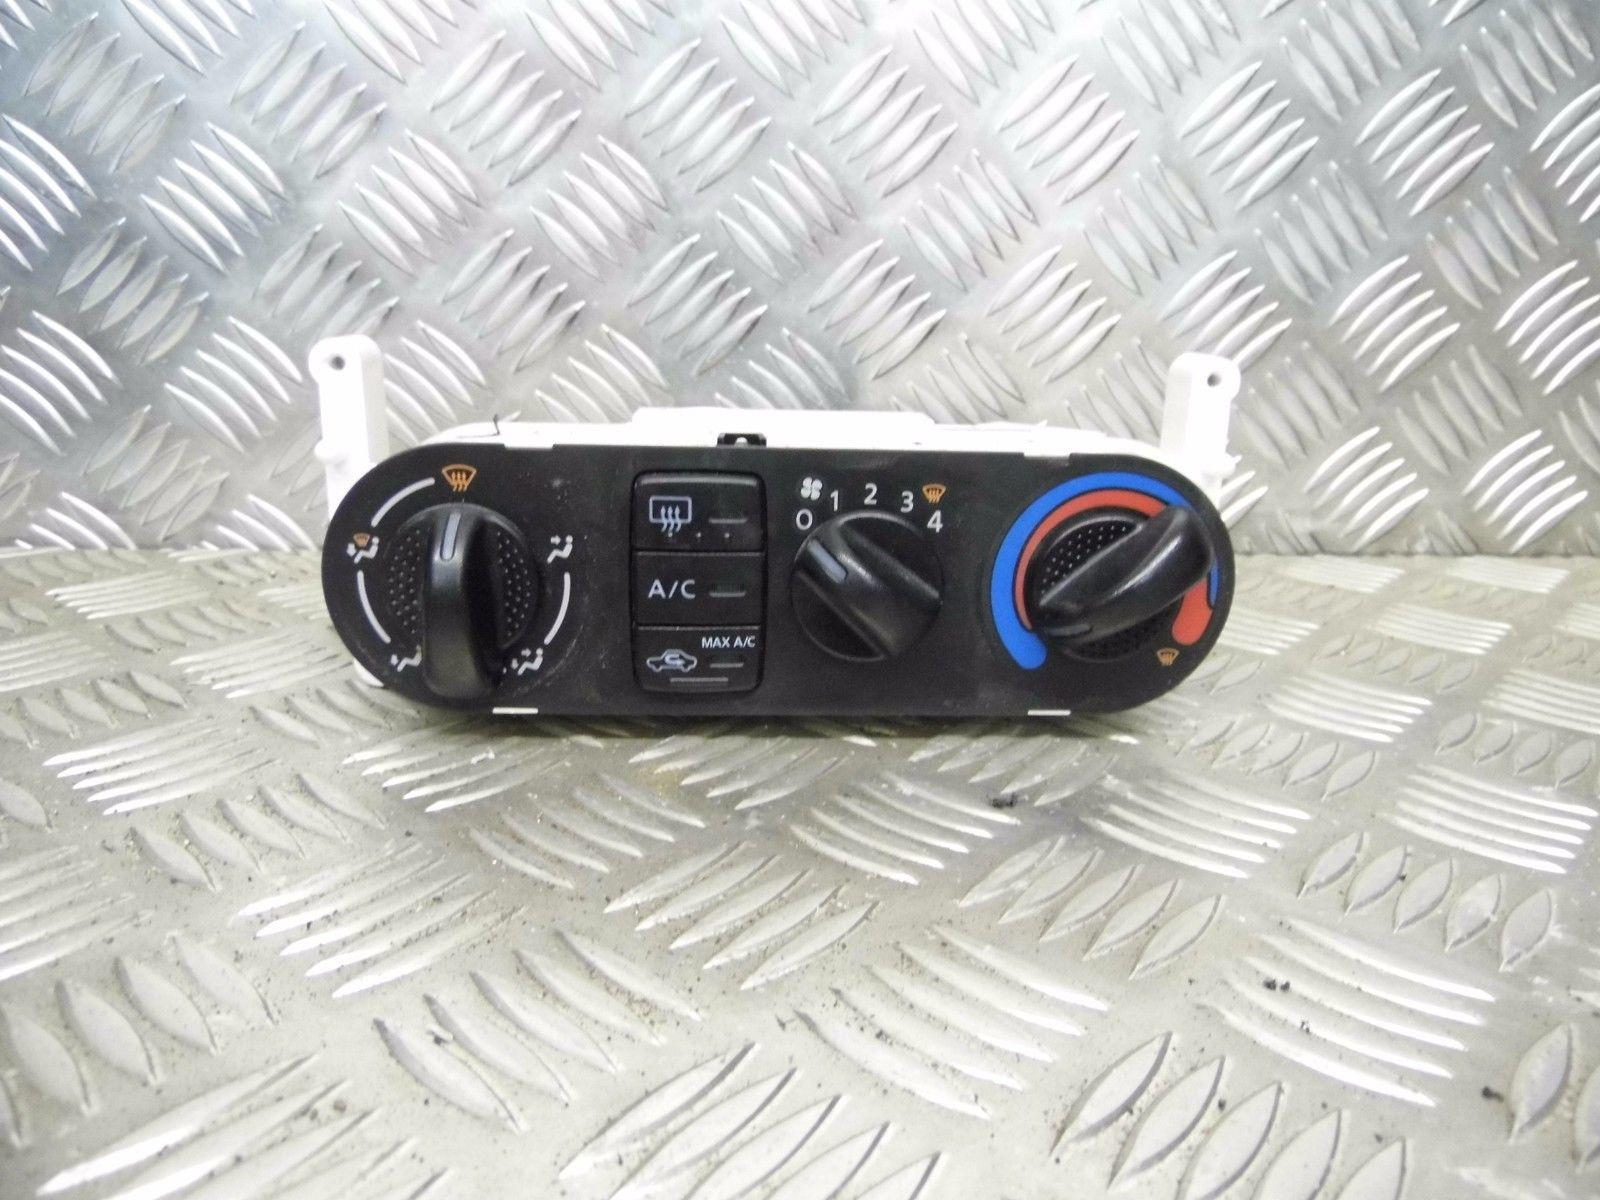 Used 2004 Nissan Almera Hatchback Heater Control Panel With A C Fuse Box Front View